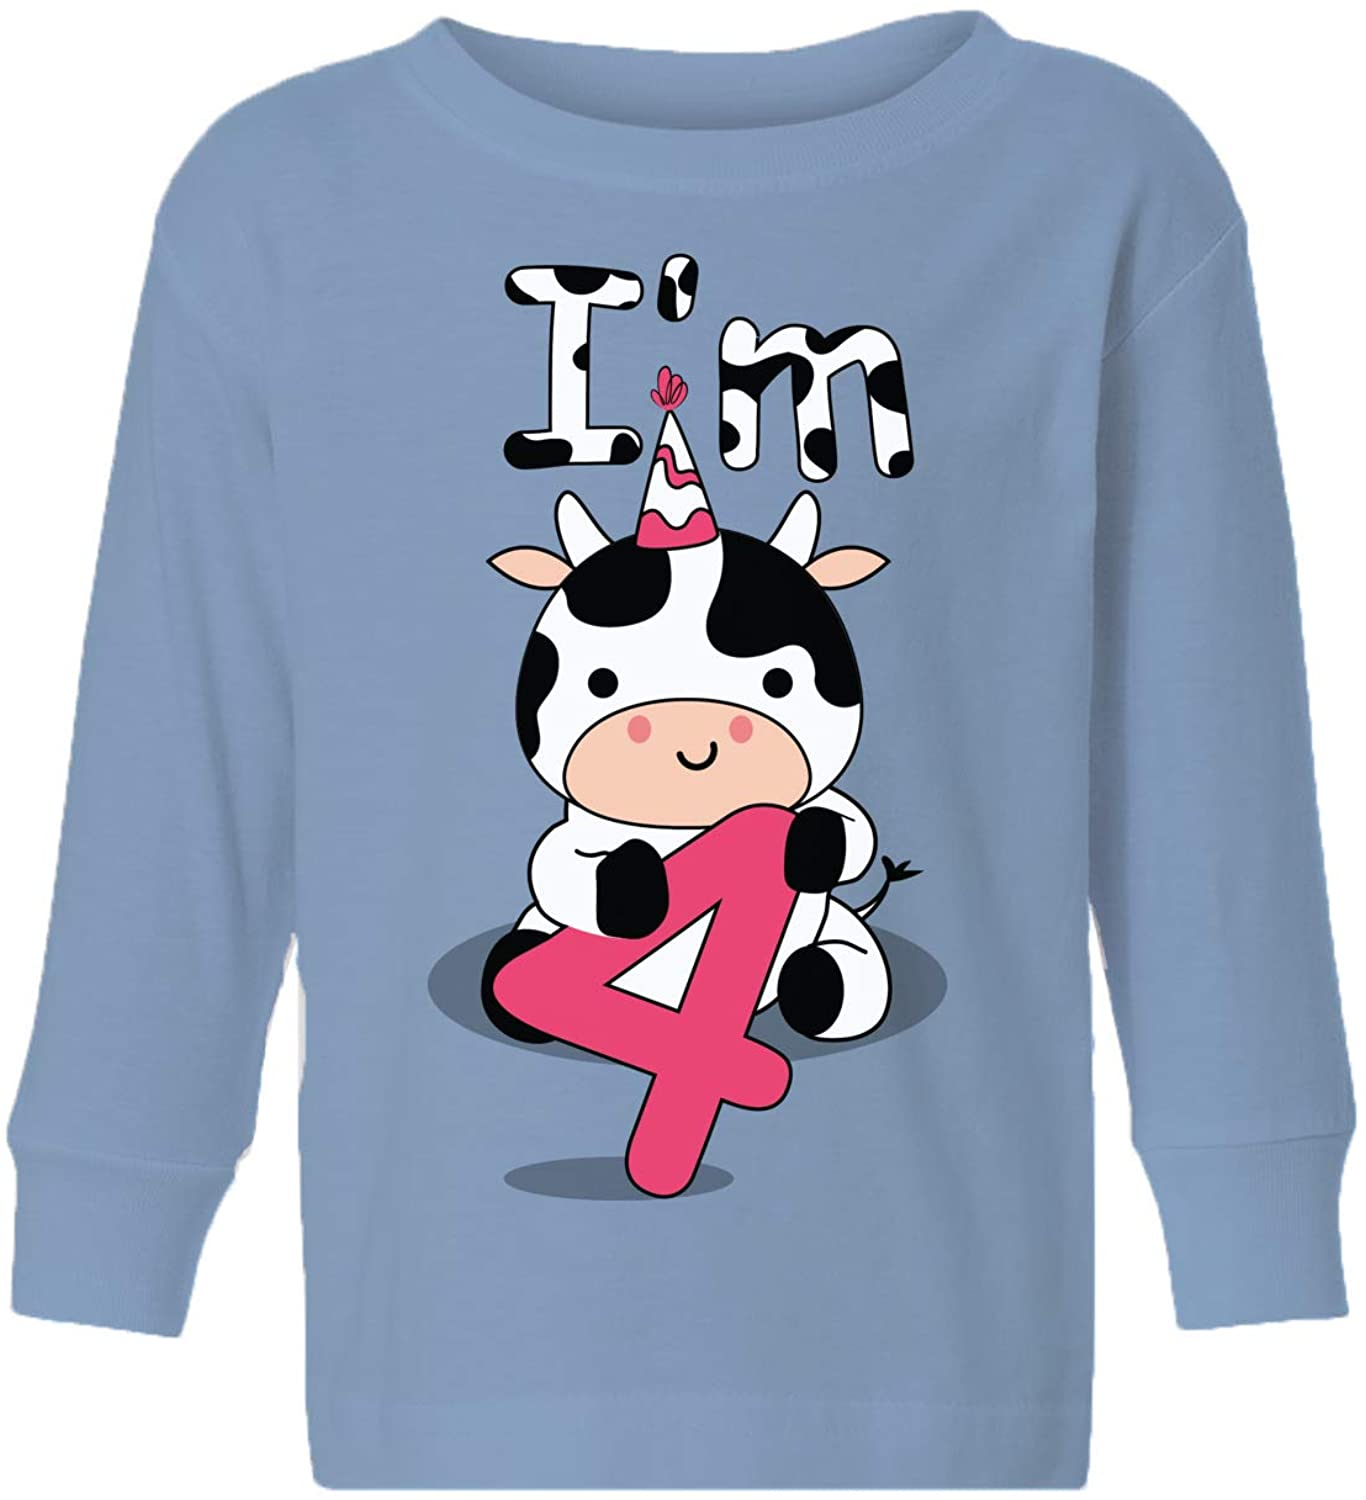 Awkward Styles Kids Birthday Outfits Cow Four Toddler Long Sleeve 4 Years Old Baby Shirt I'm Four for Children